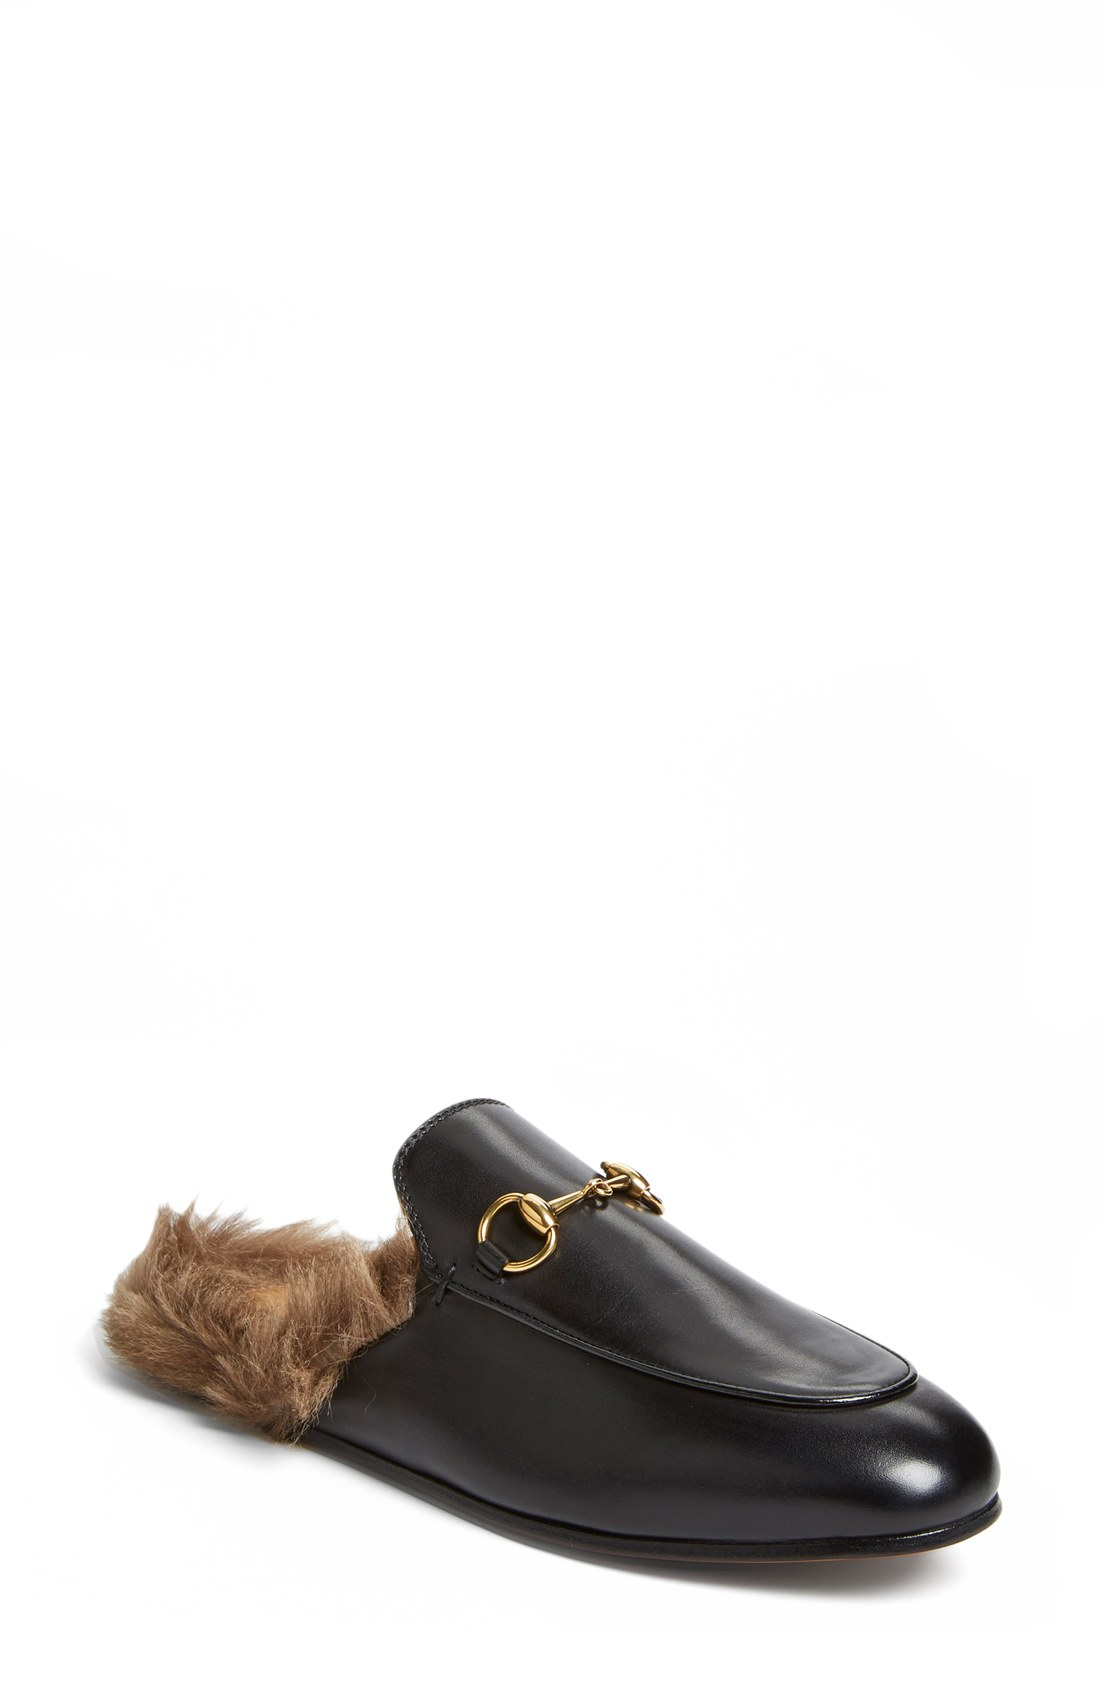 Gucci Princetown Slip On Loafer Women